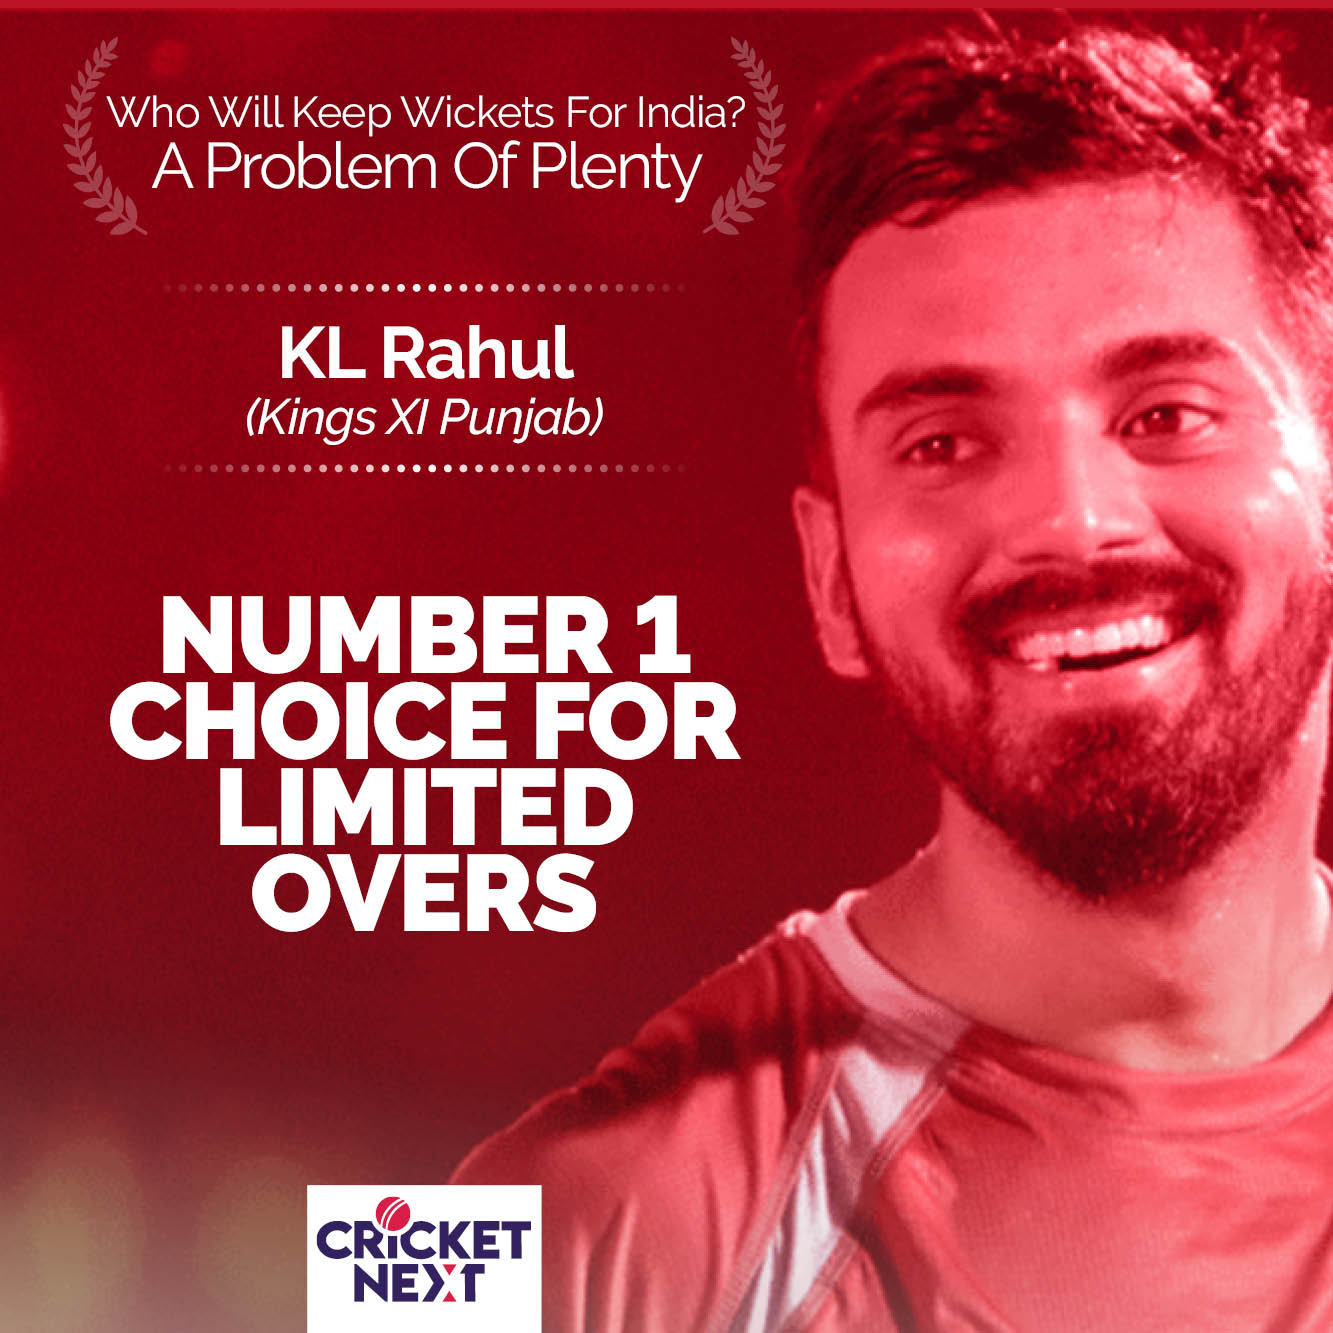 IPL 2020: Rahul is First Choice Limited Overs' Keeper But Kishan and Pant will give Samson a Run for his Money